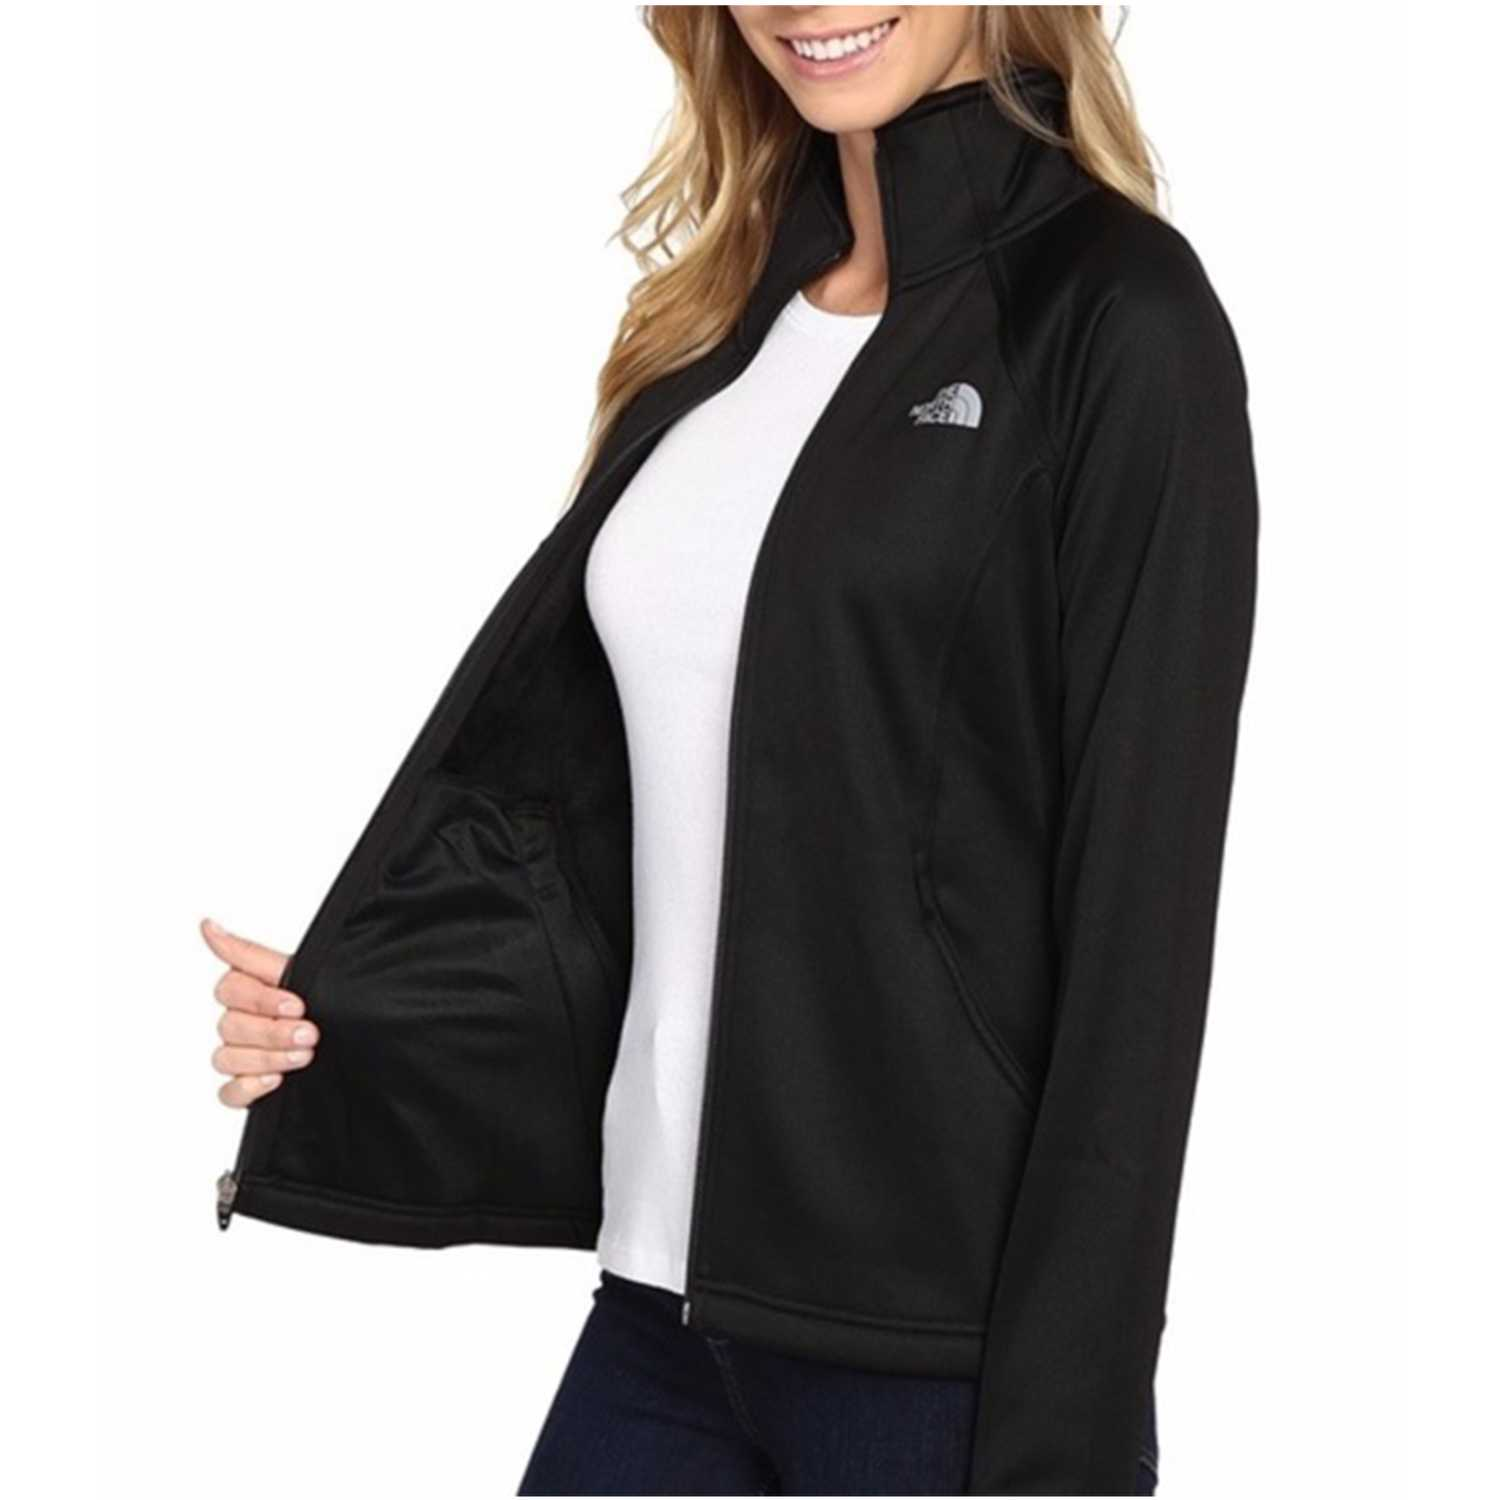 Casacas de Mujer The North Face Negro w agave full zip